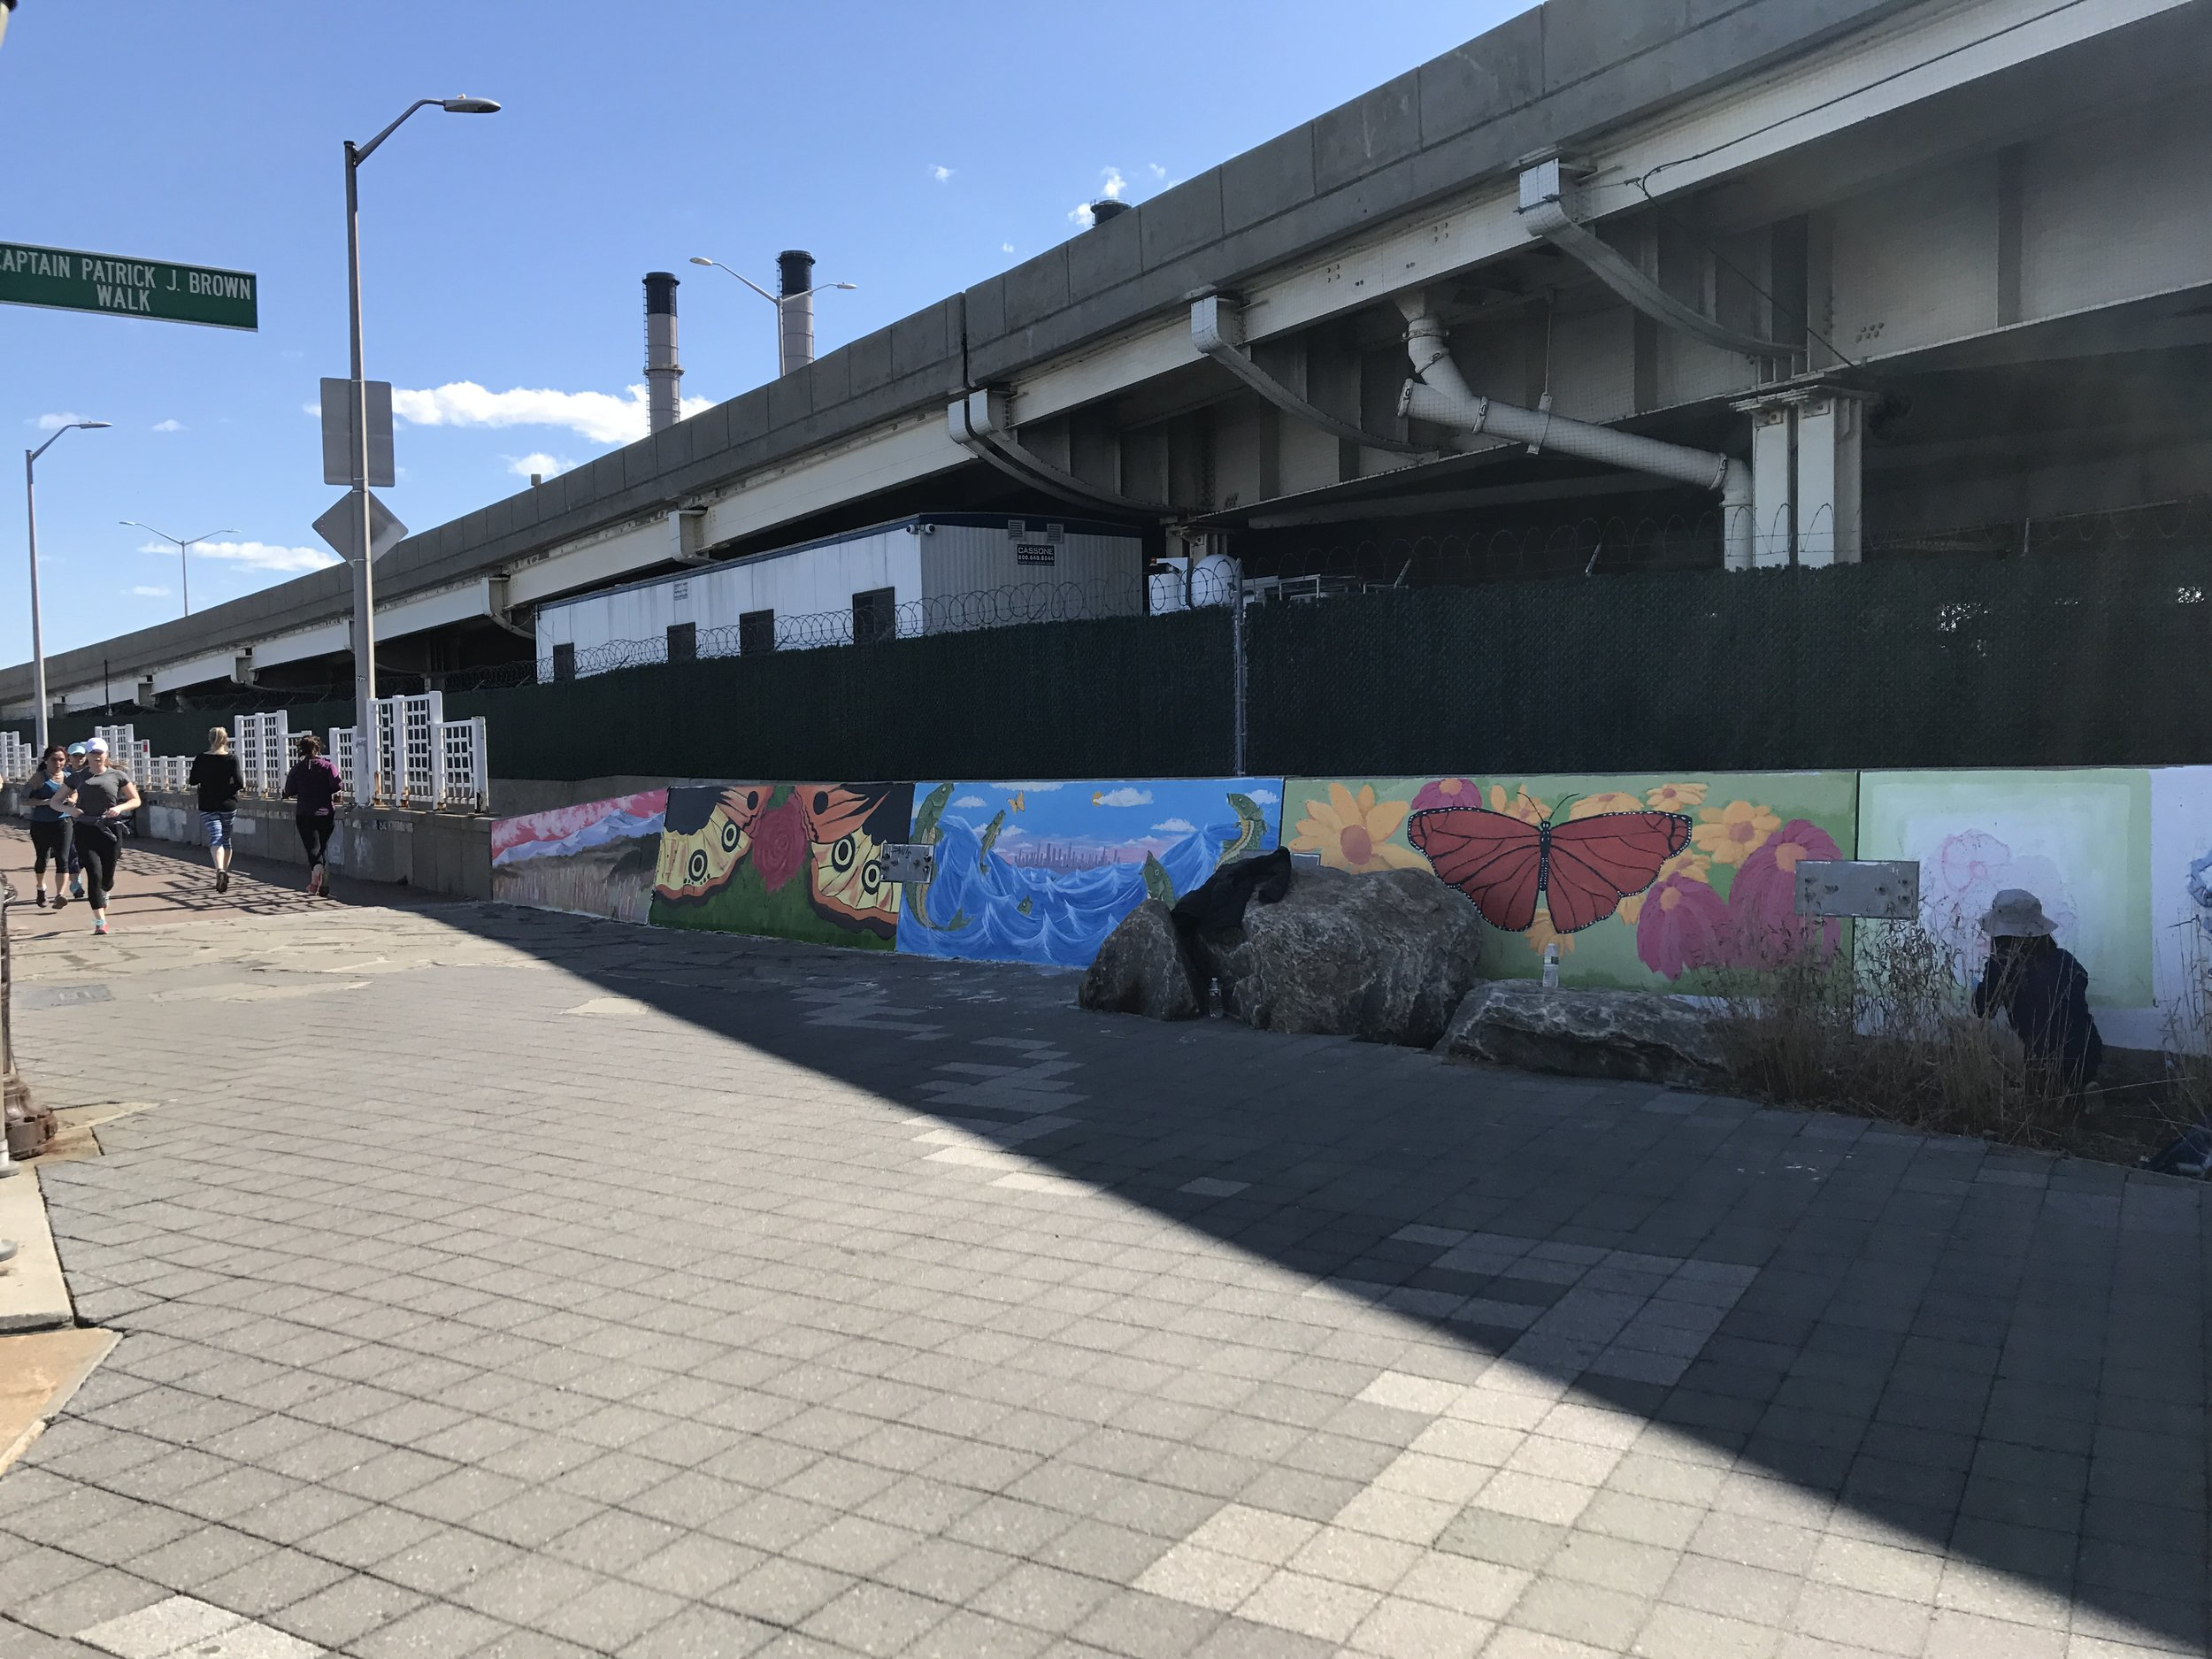 The running path with several finished murals.